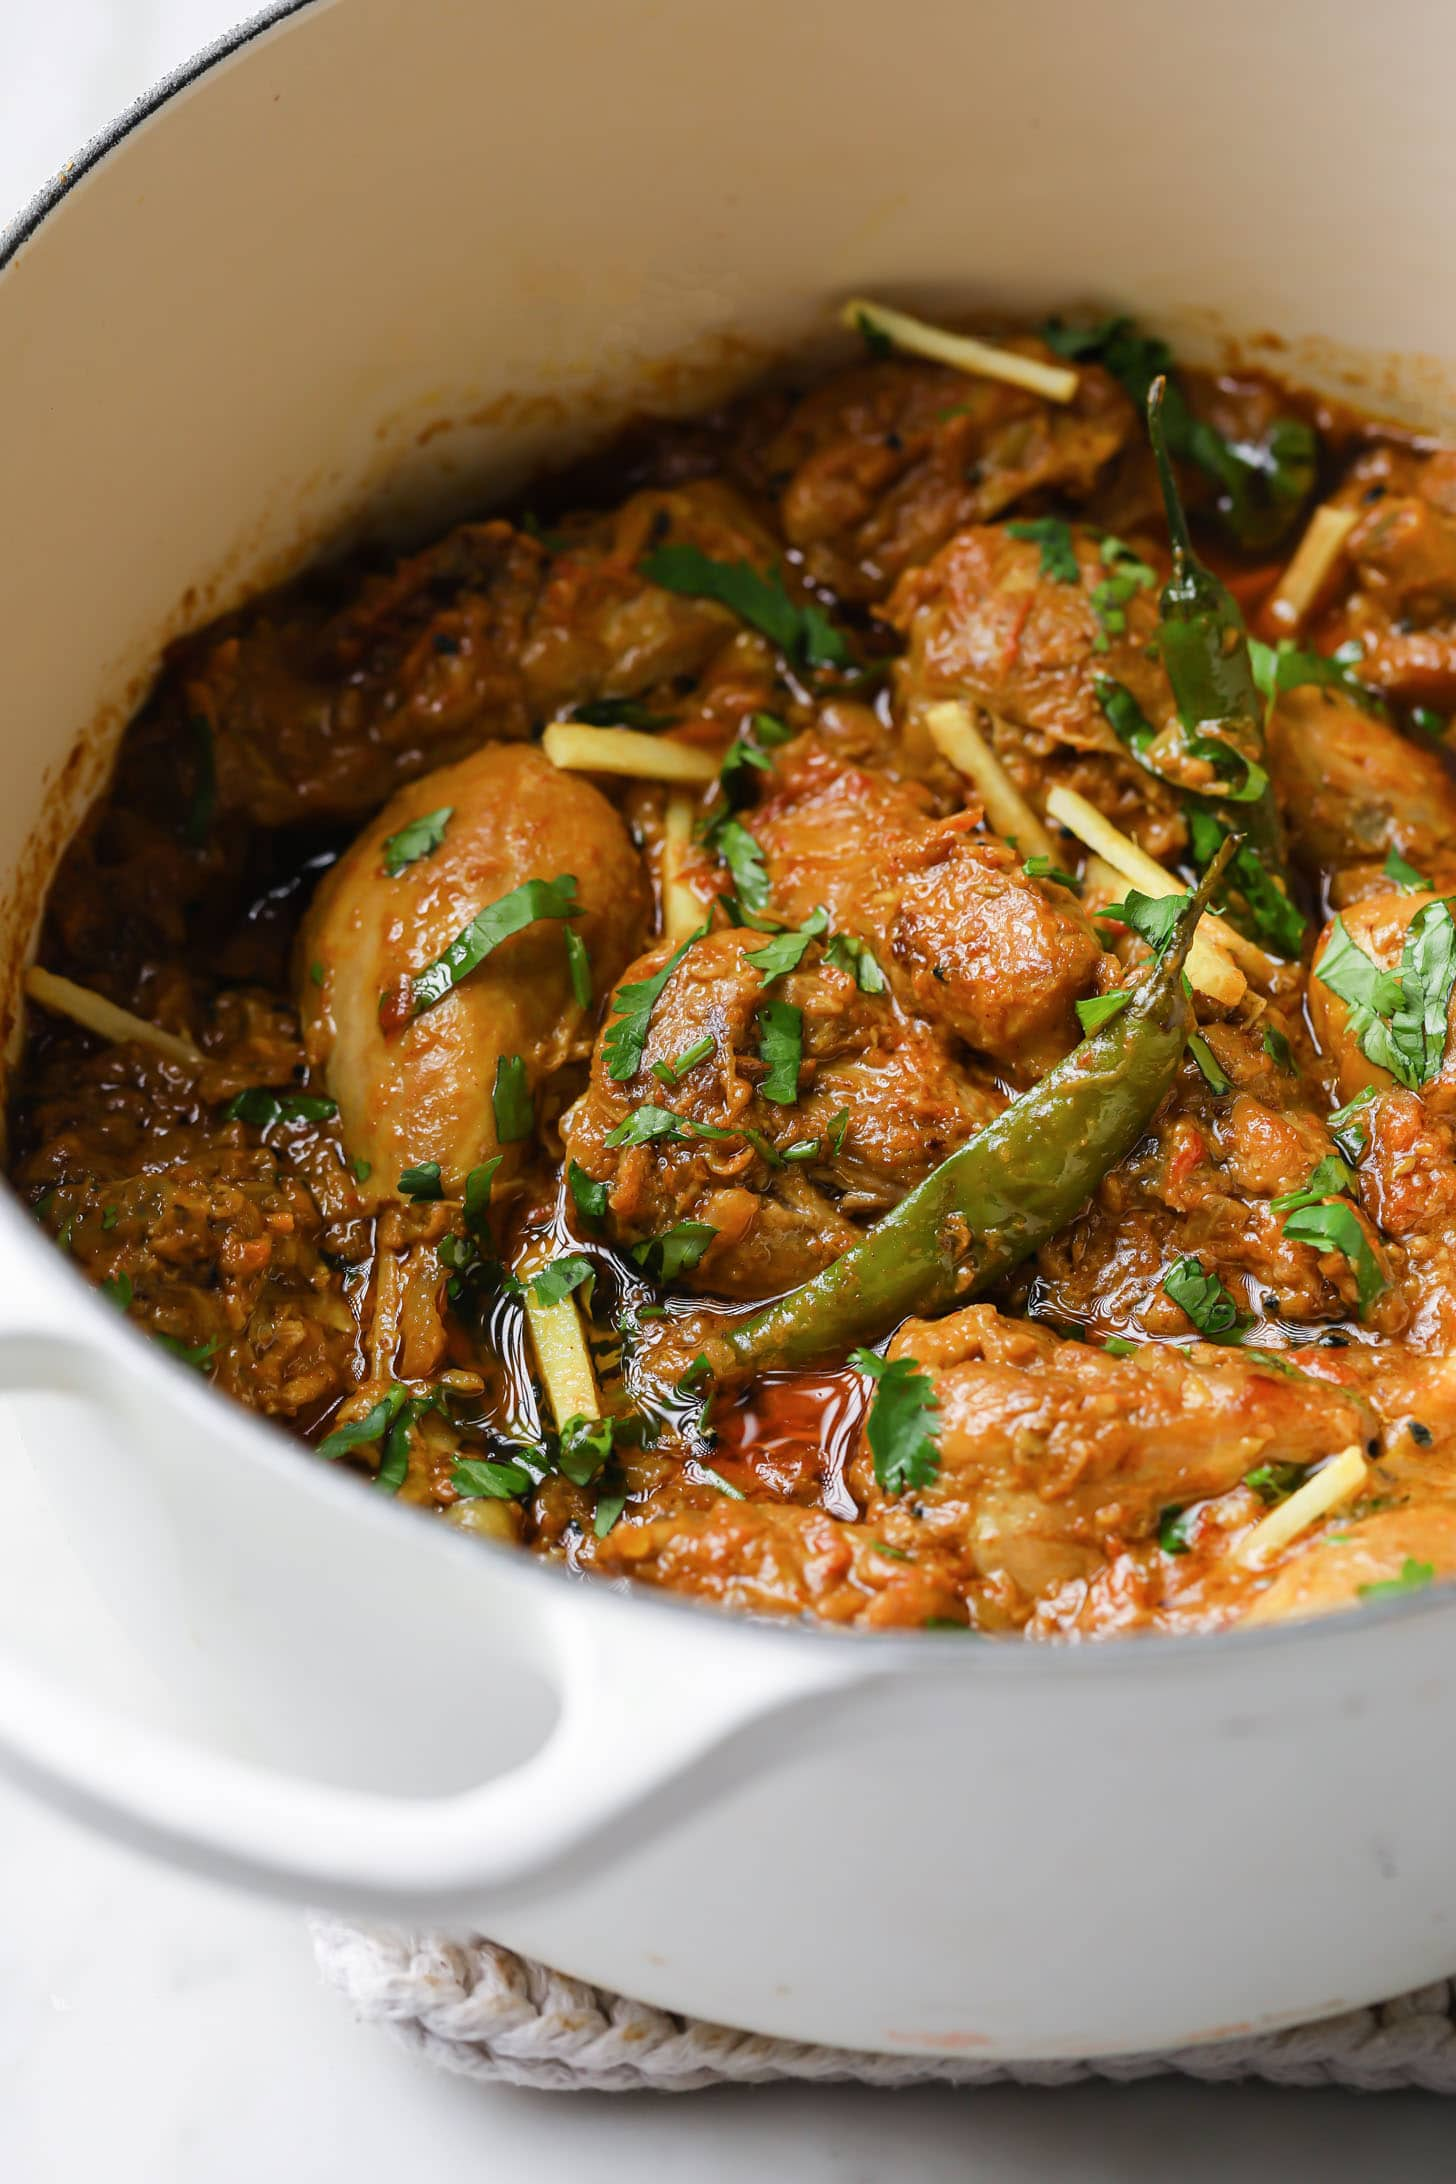 Achari Chicken garnished with cilantro and julienned ginger in a white Dutch oven